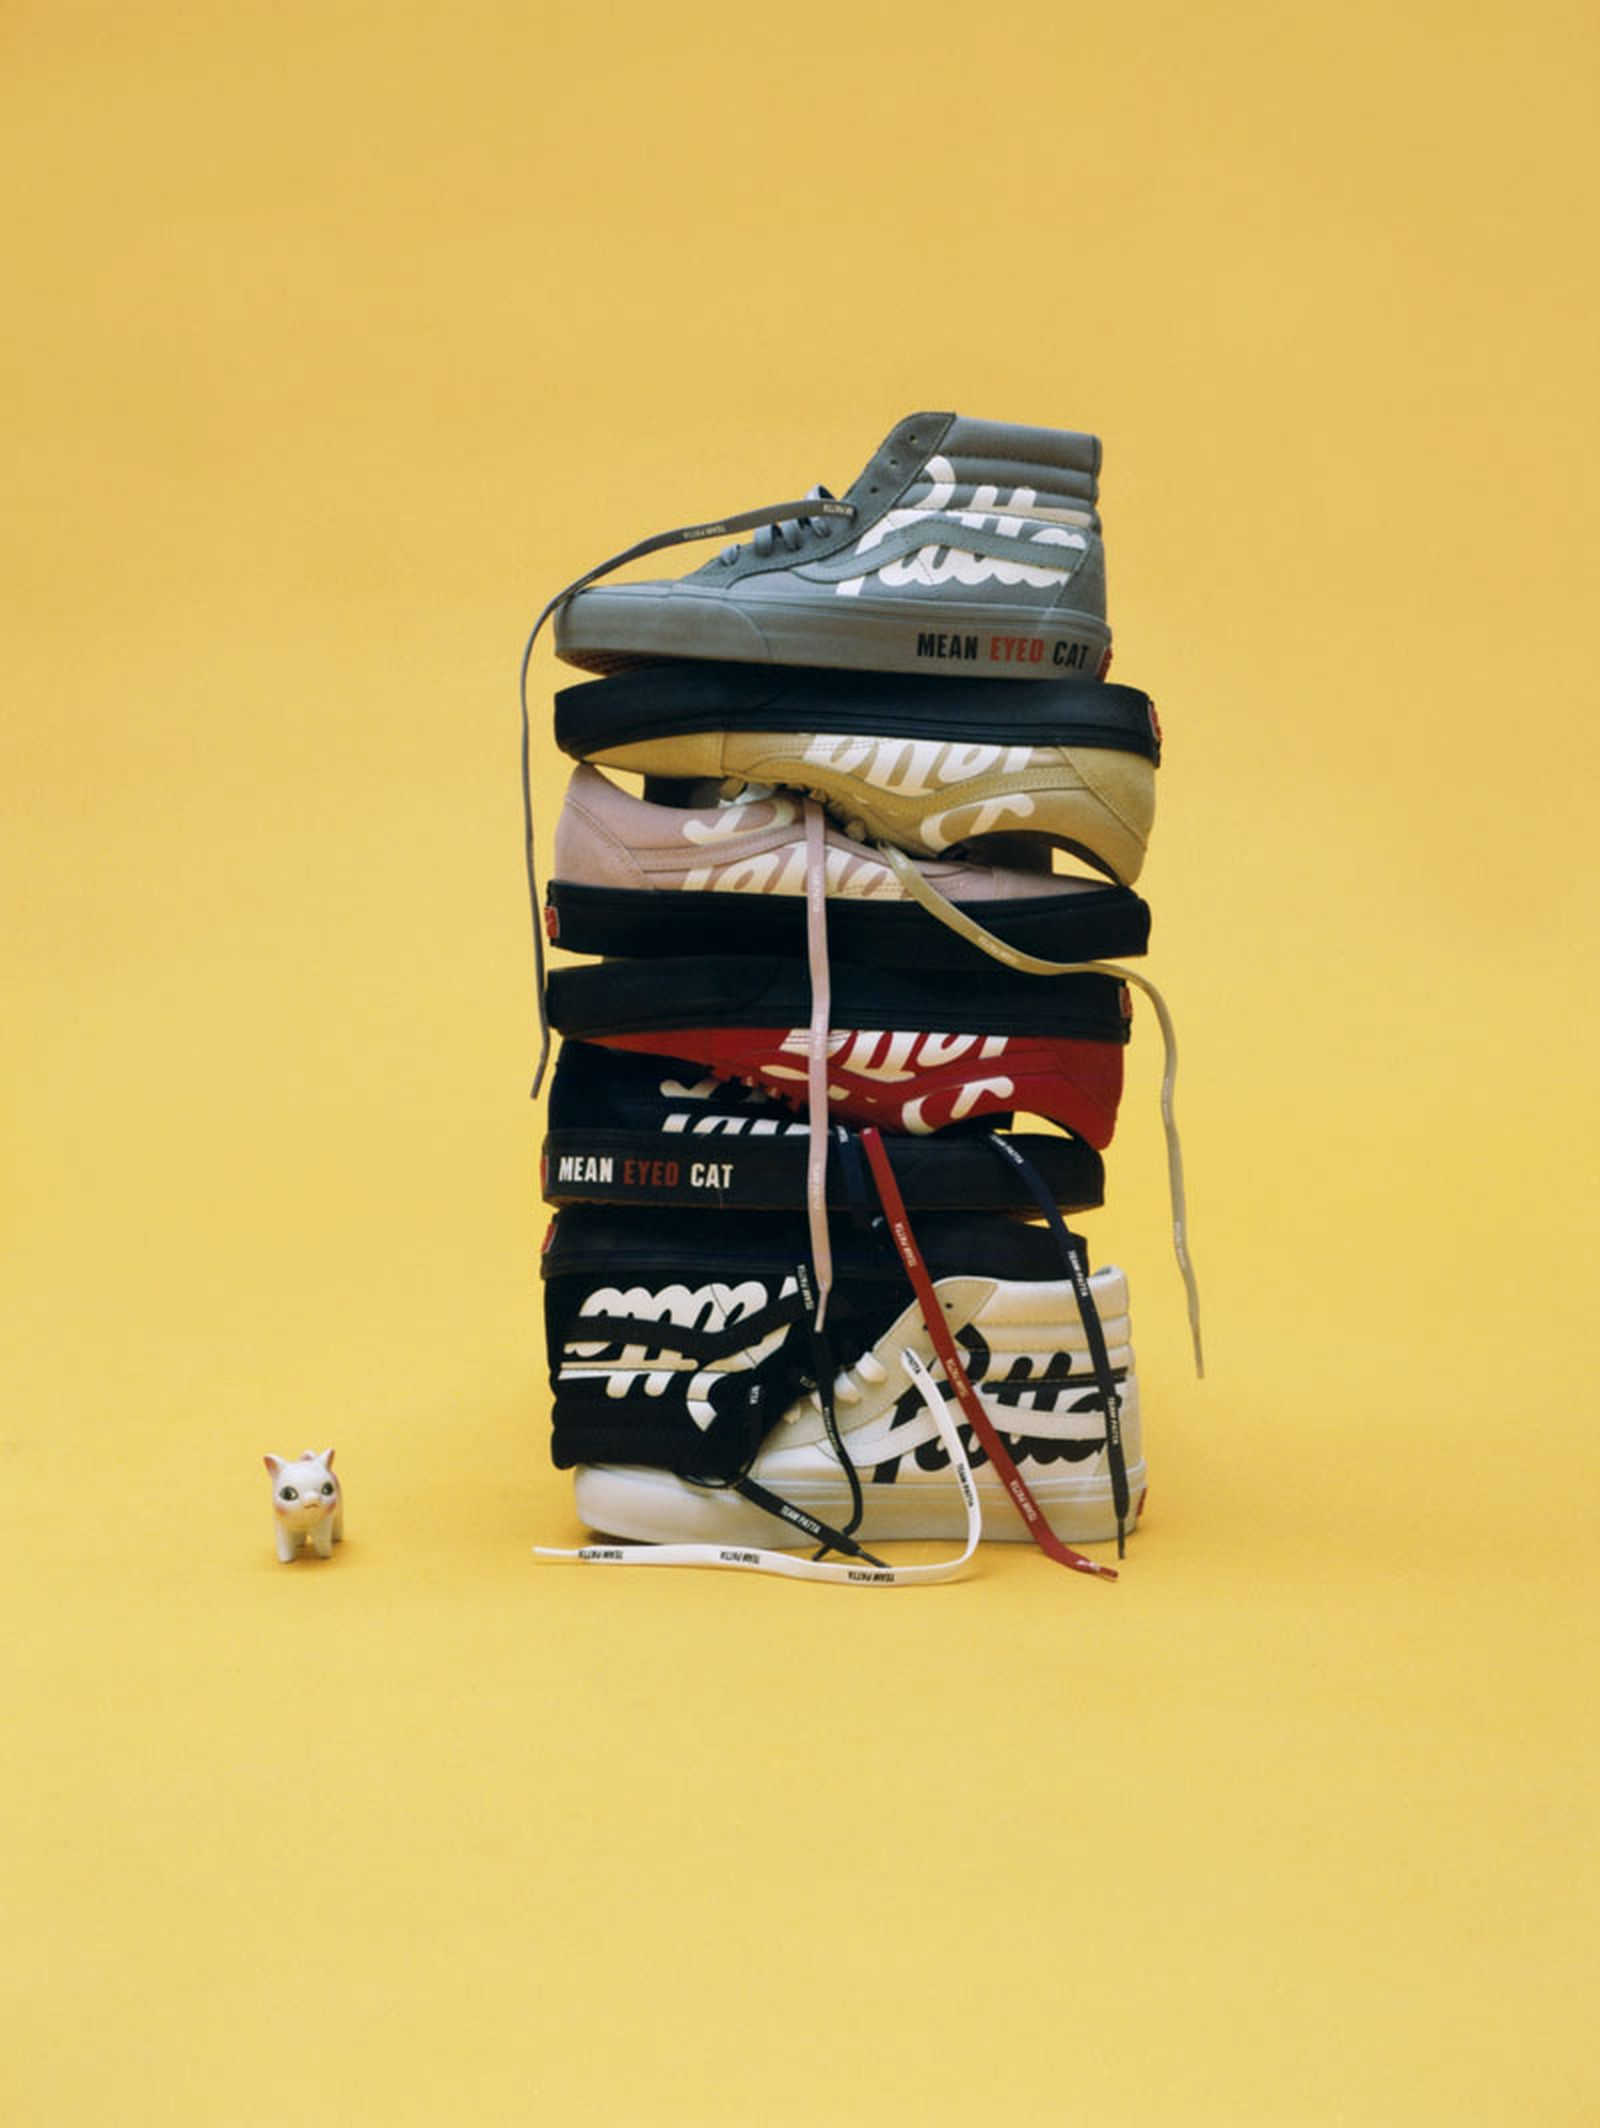 patta-vans-mean-eyed-cats-collection-release-date-price-08